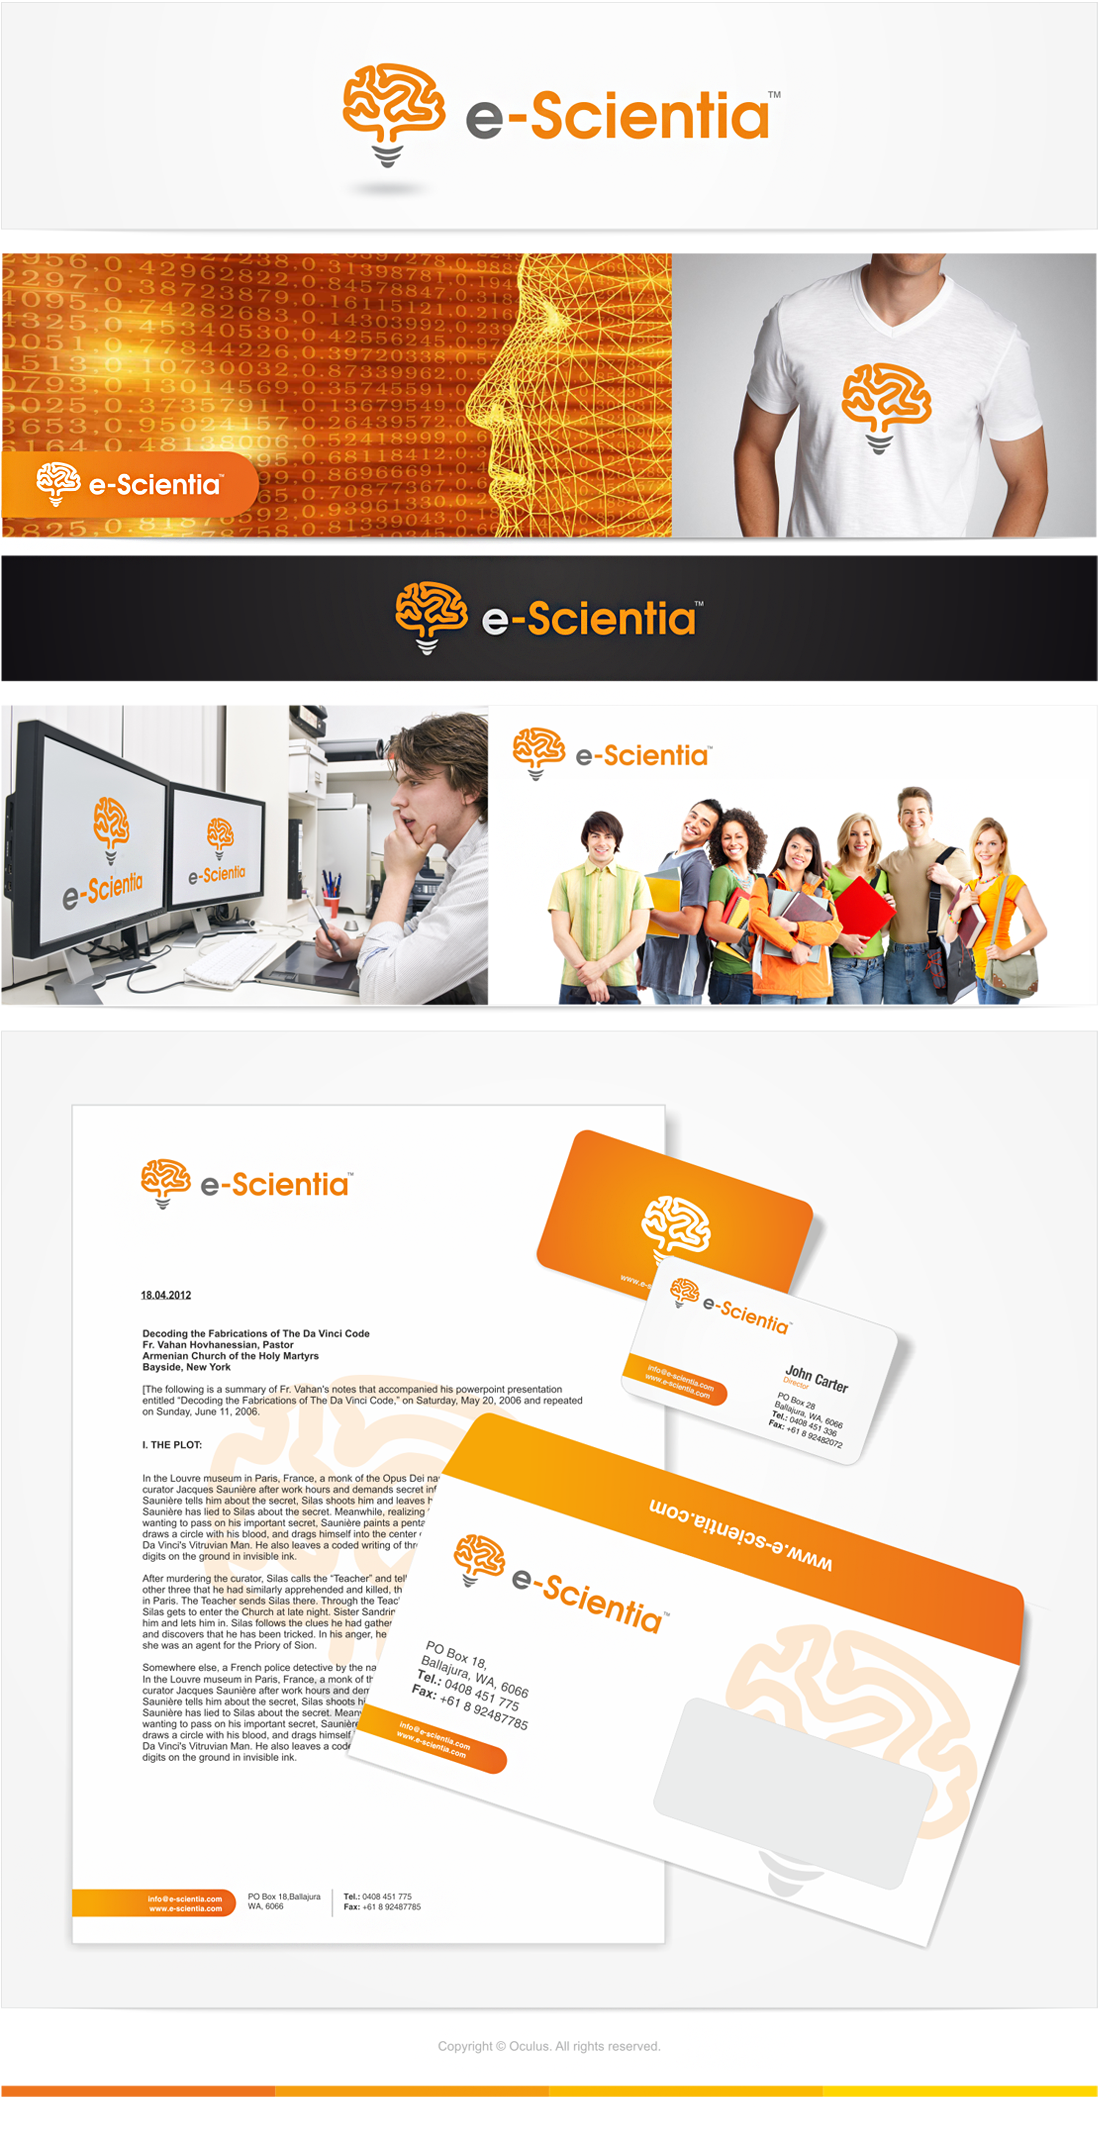 e-Scientia needs a new logo